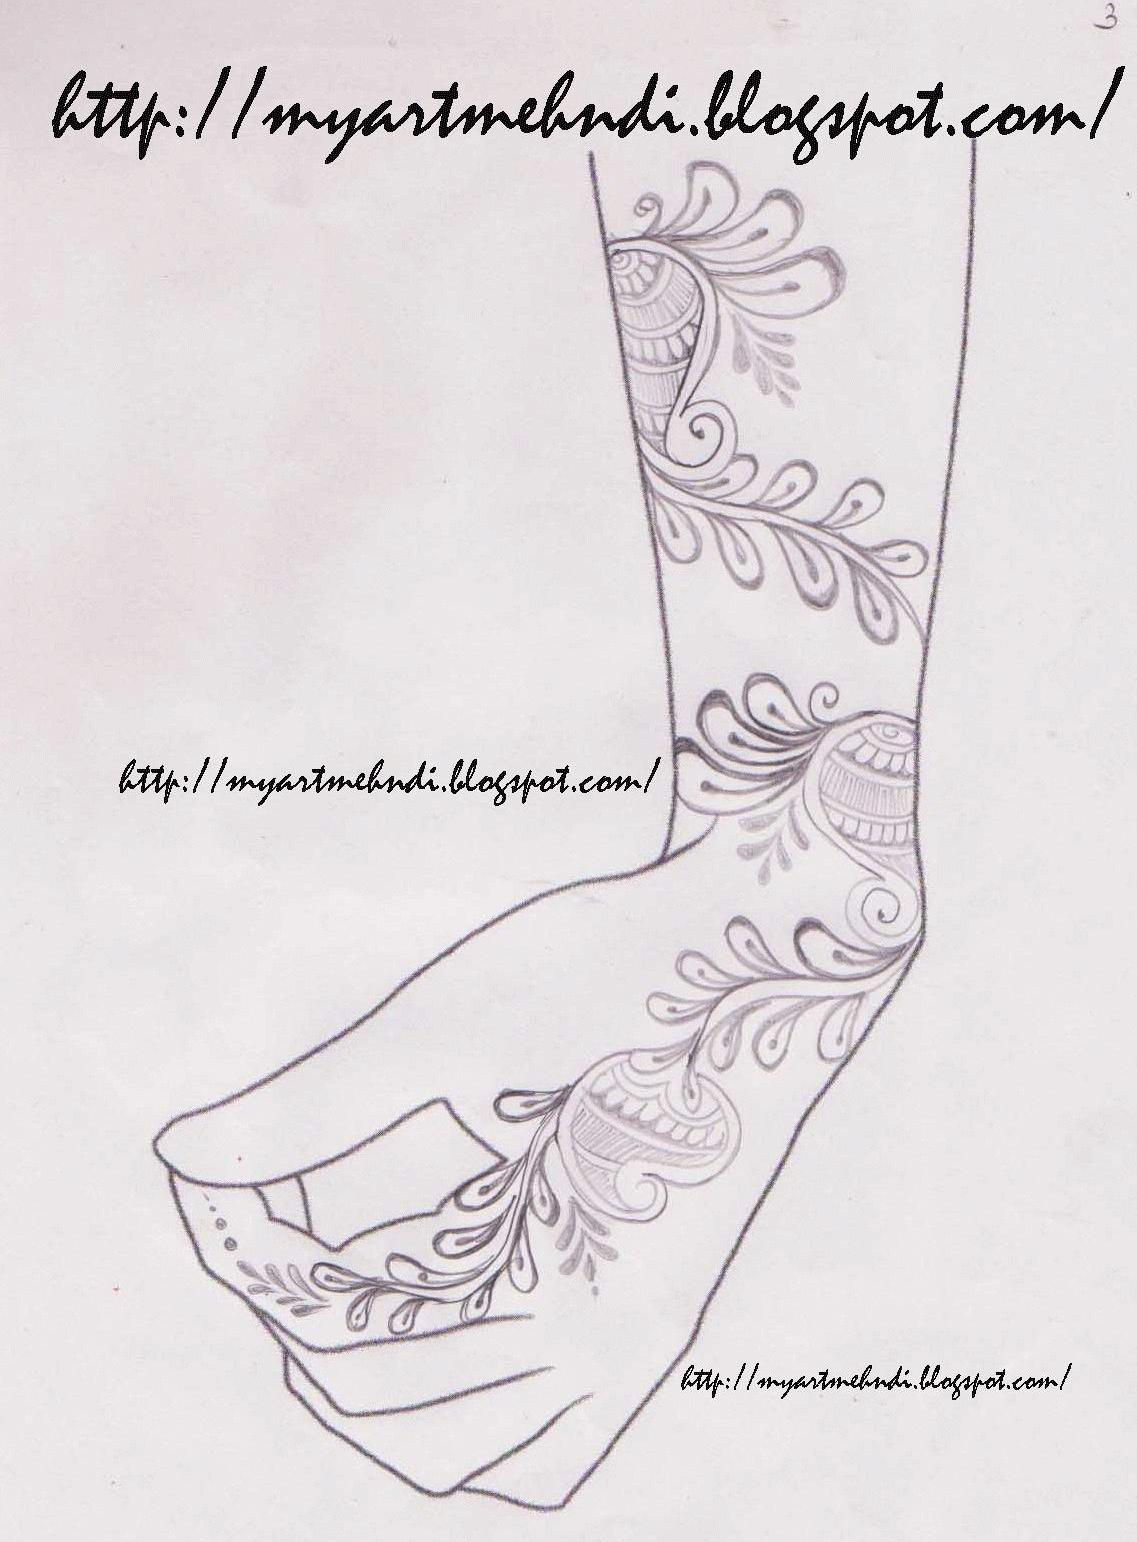 MehndiDesigns: Design on paper-3